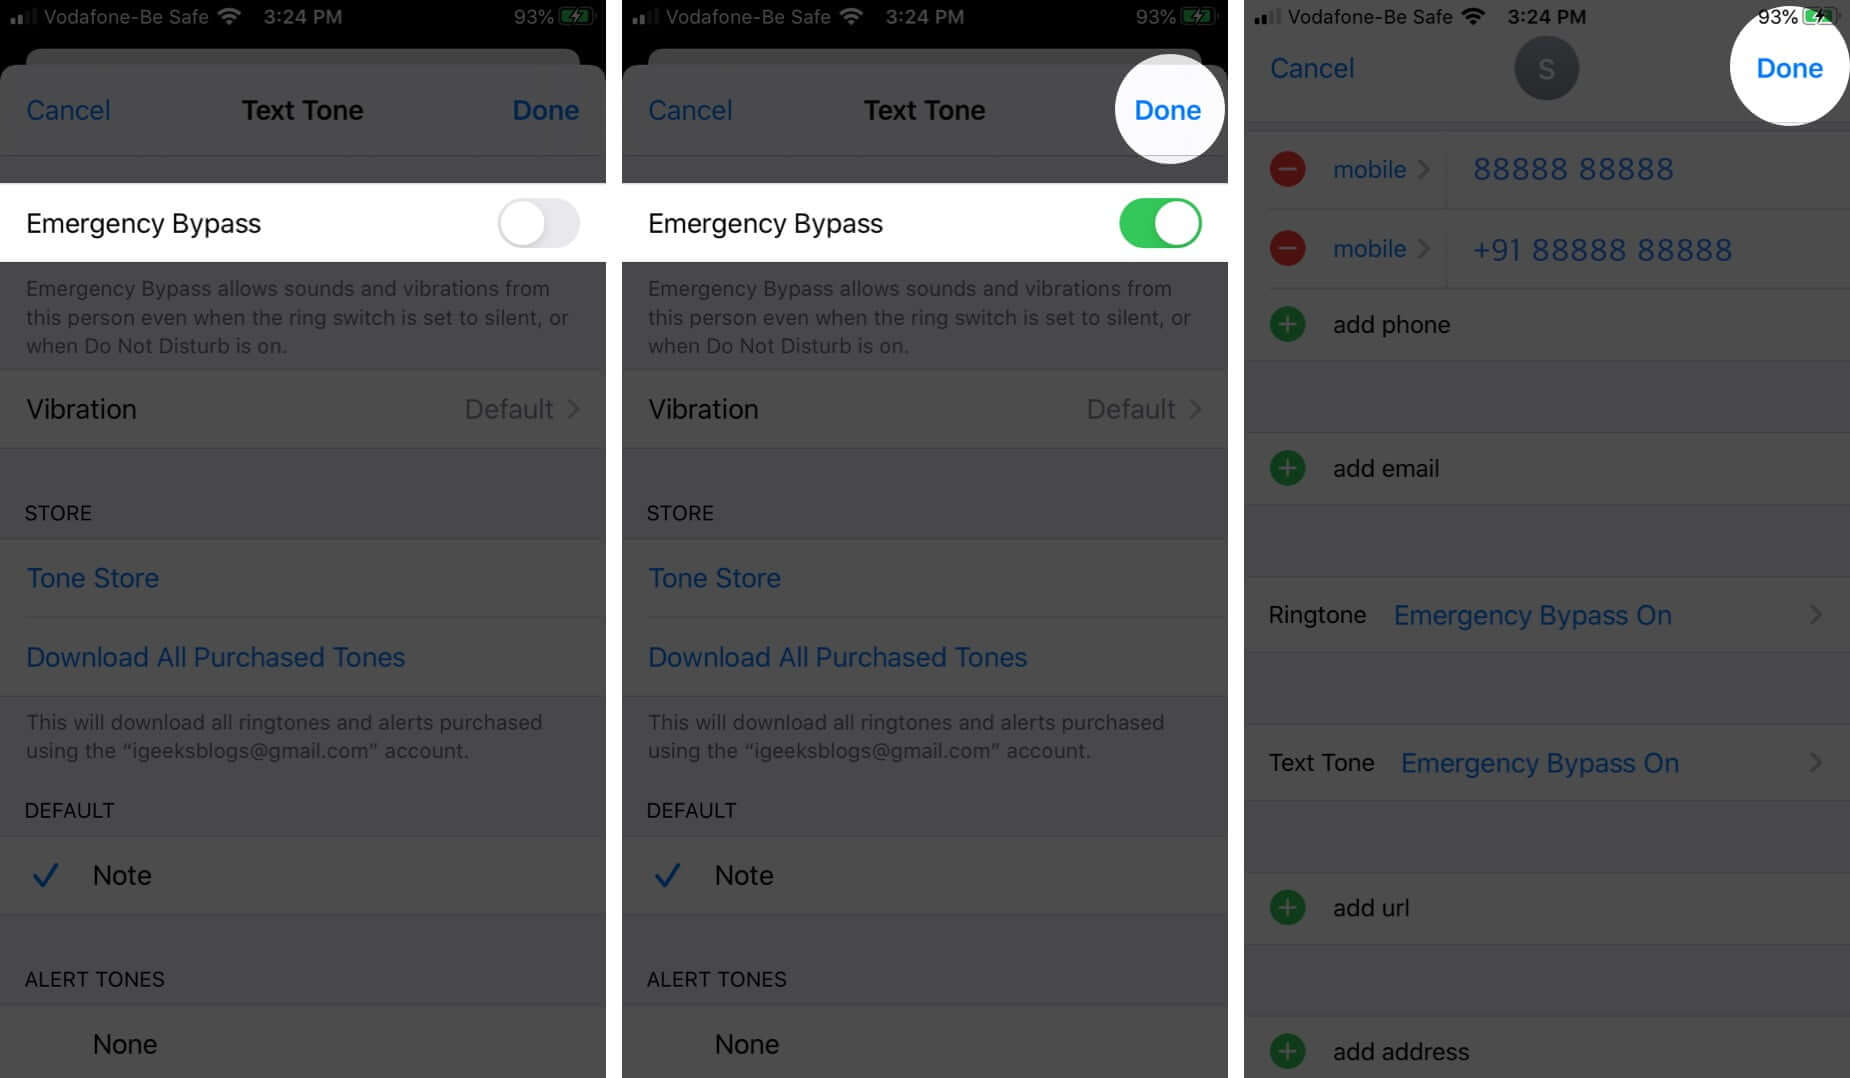 Turn ON Emergency Bypass for Texts on iPhone or iPad